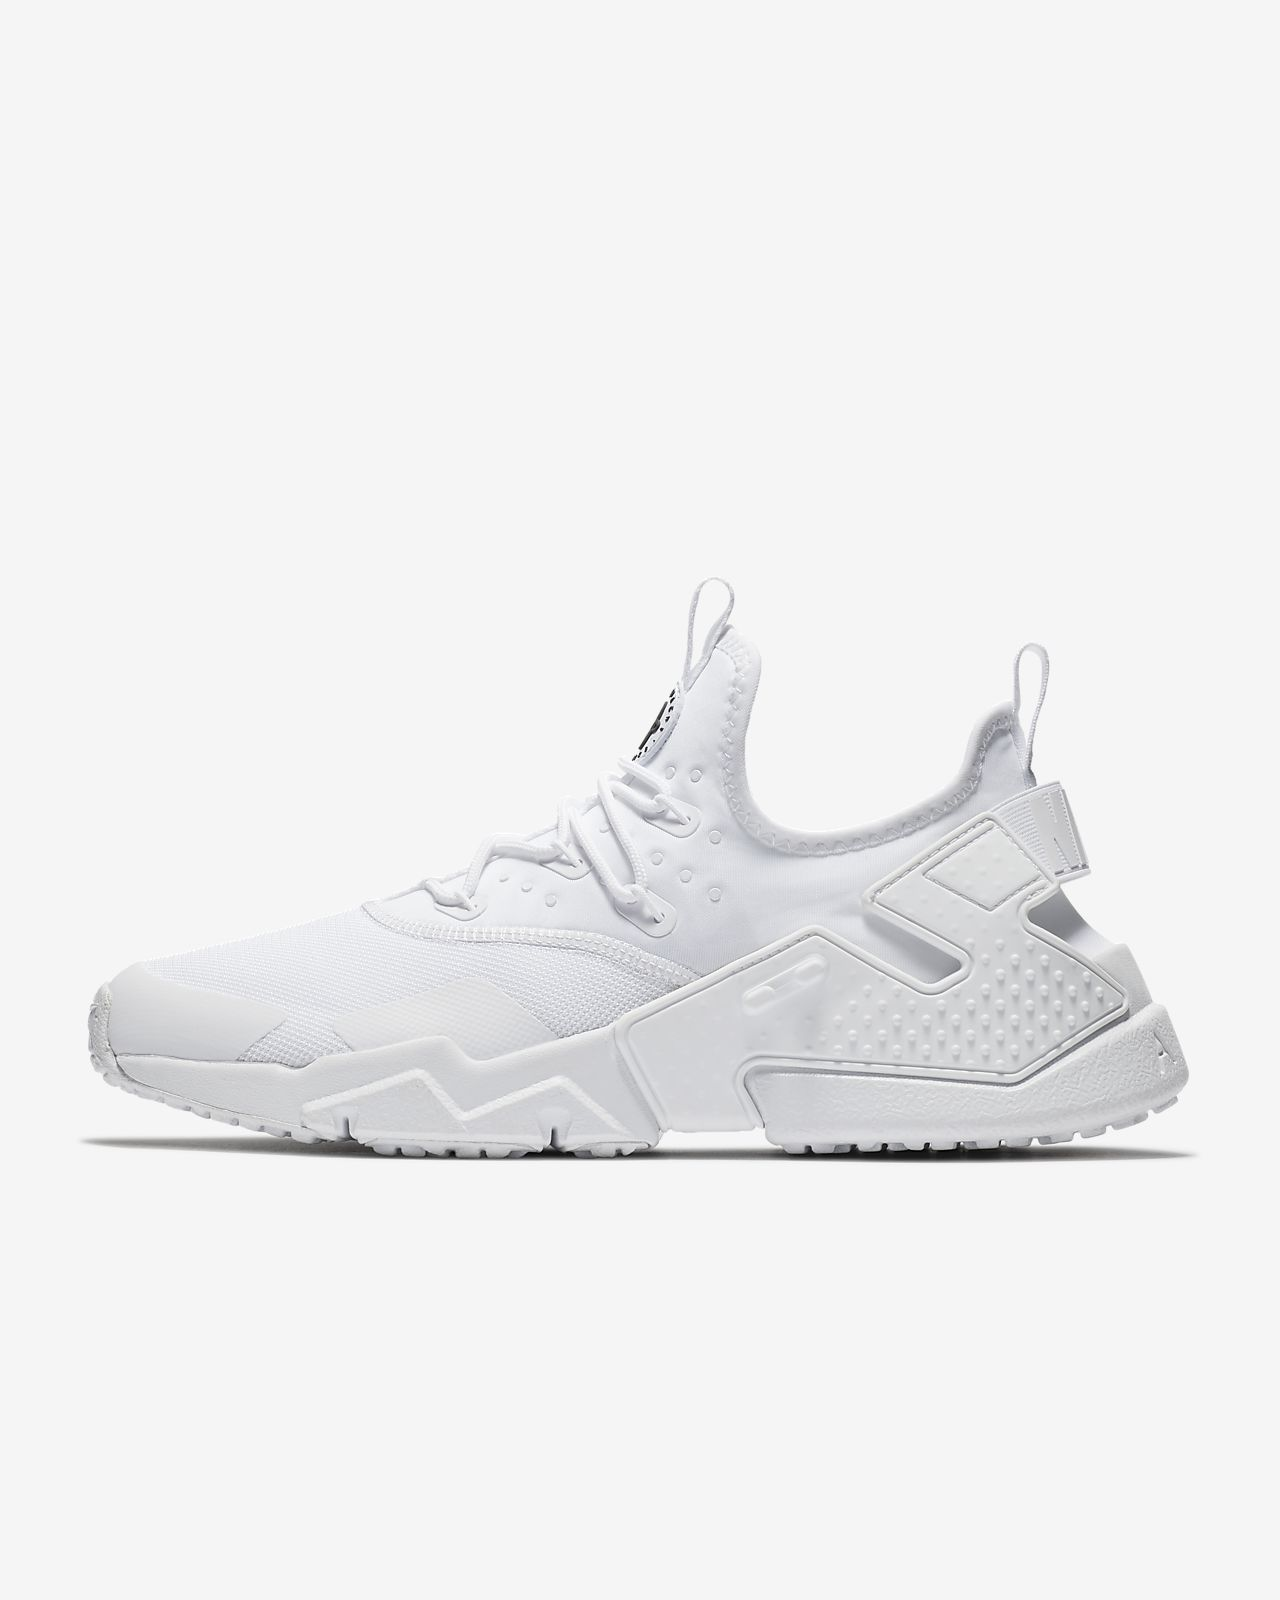 official photos e0b6d b6b27 ... Nike Air Huarache Drift Men s Shoe